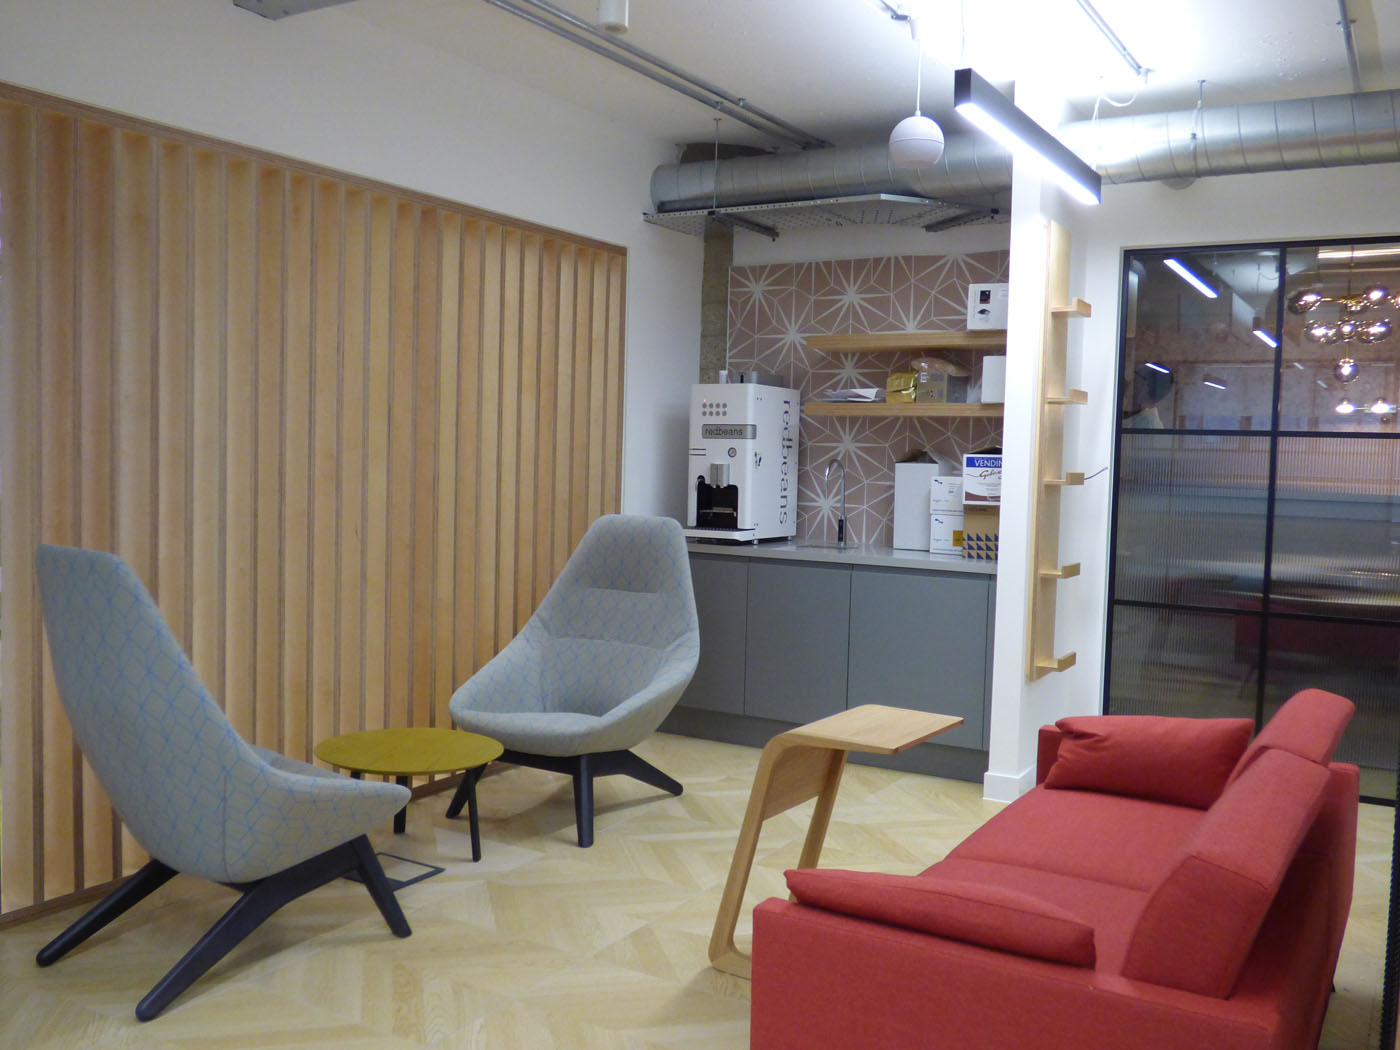 Workplace Design London - Home Group (1)